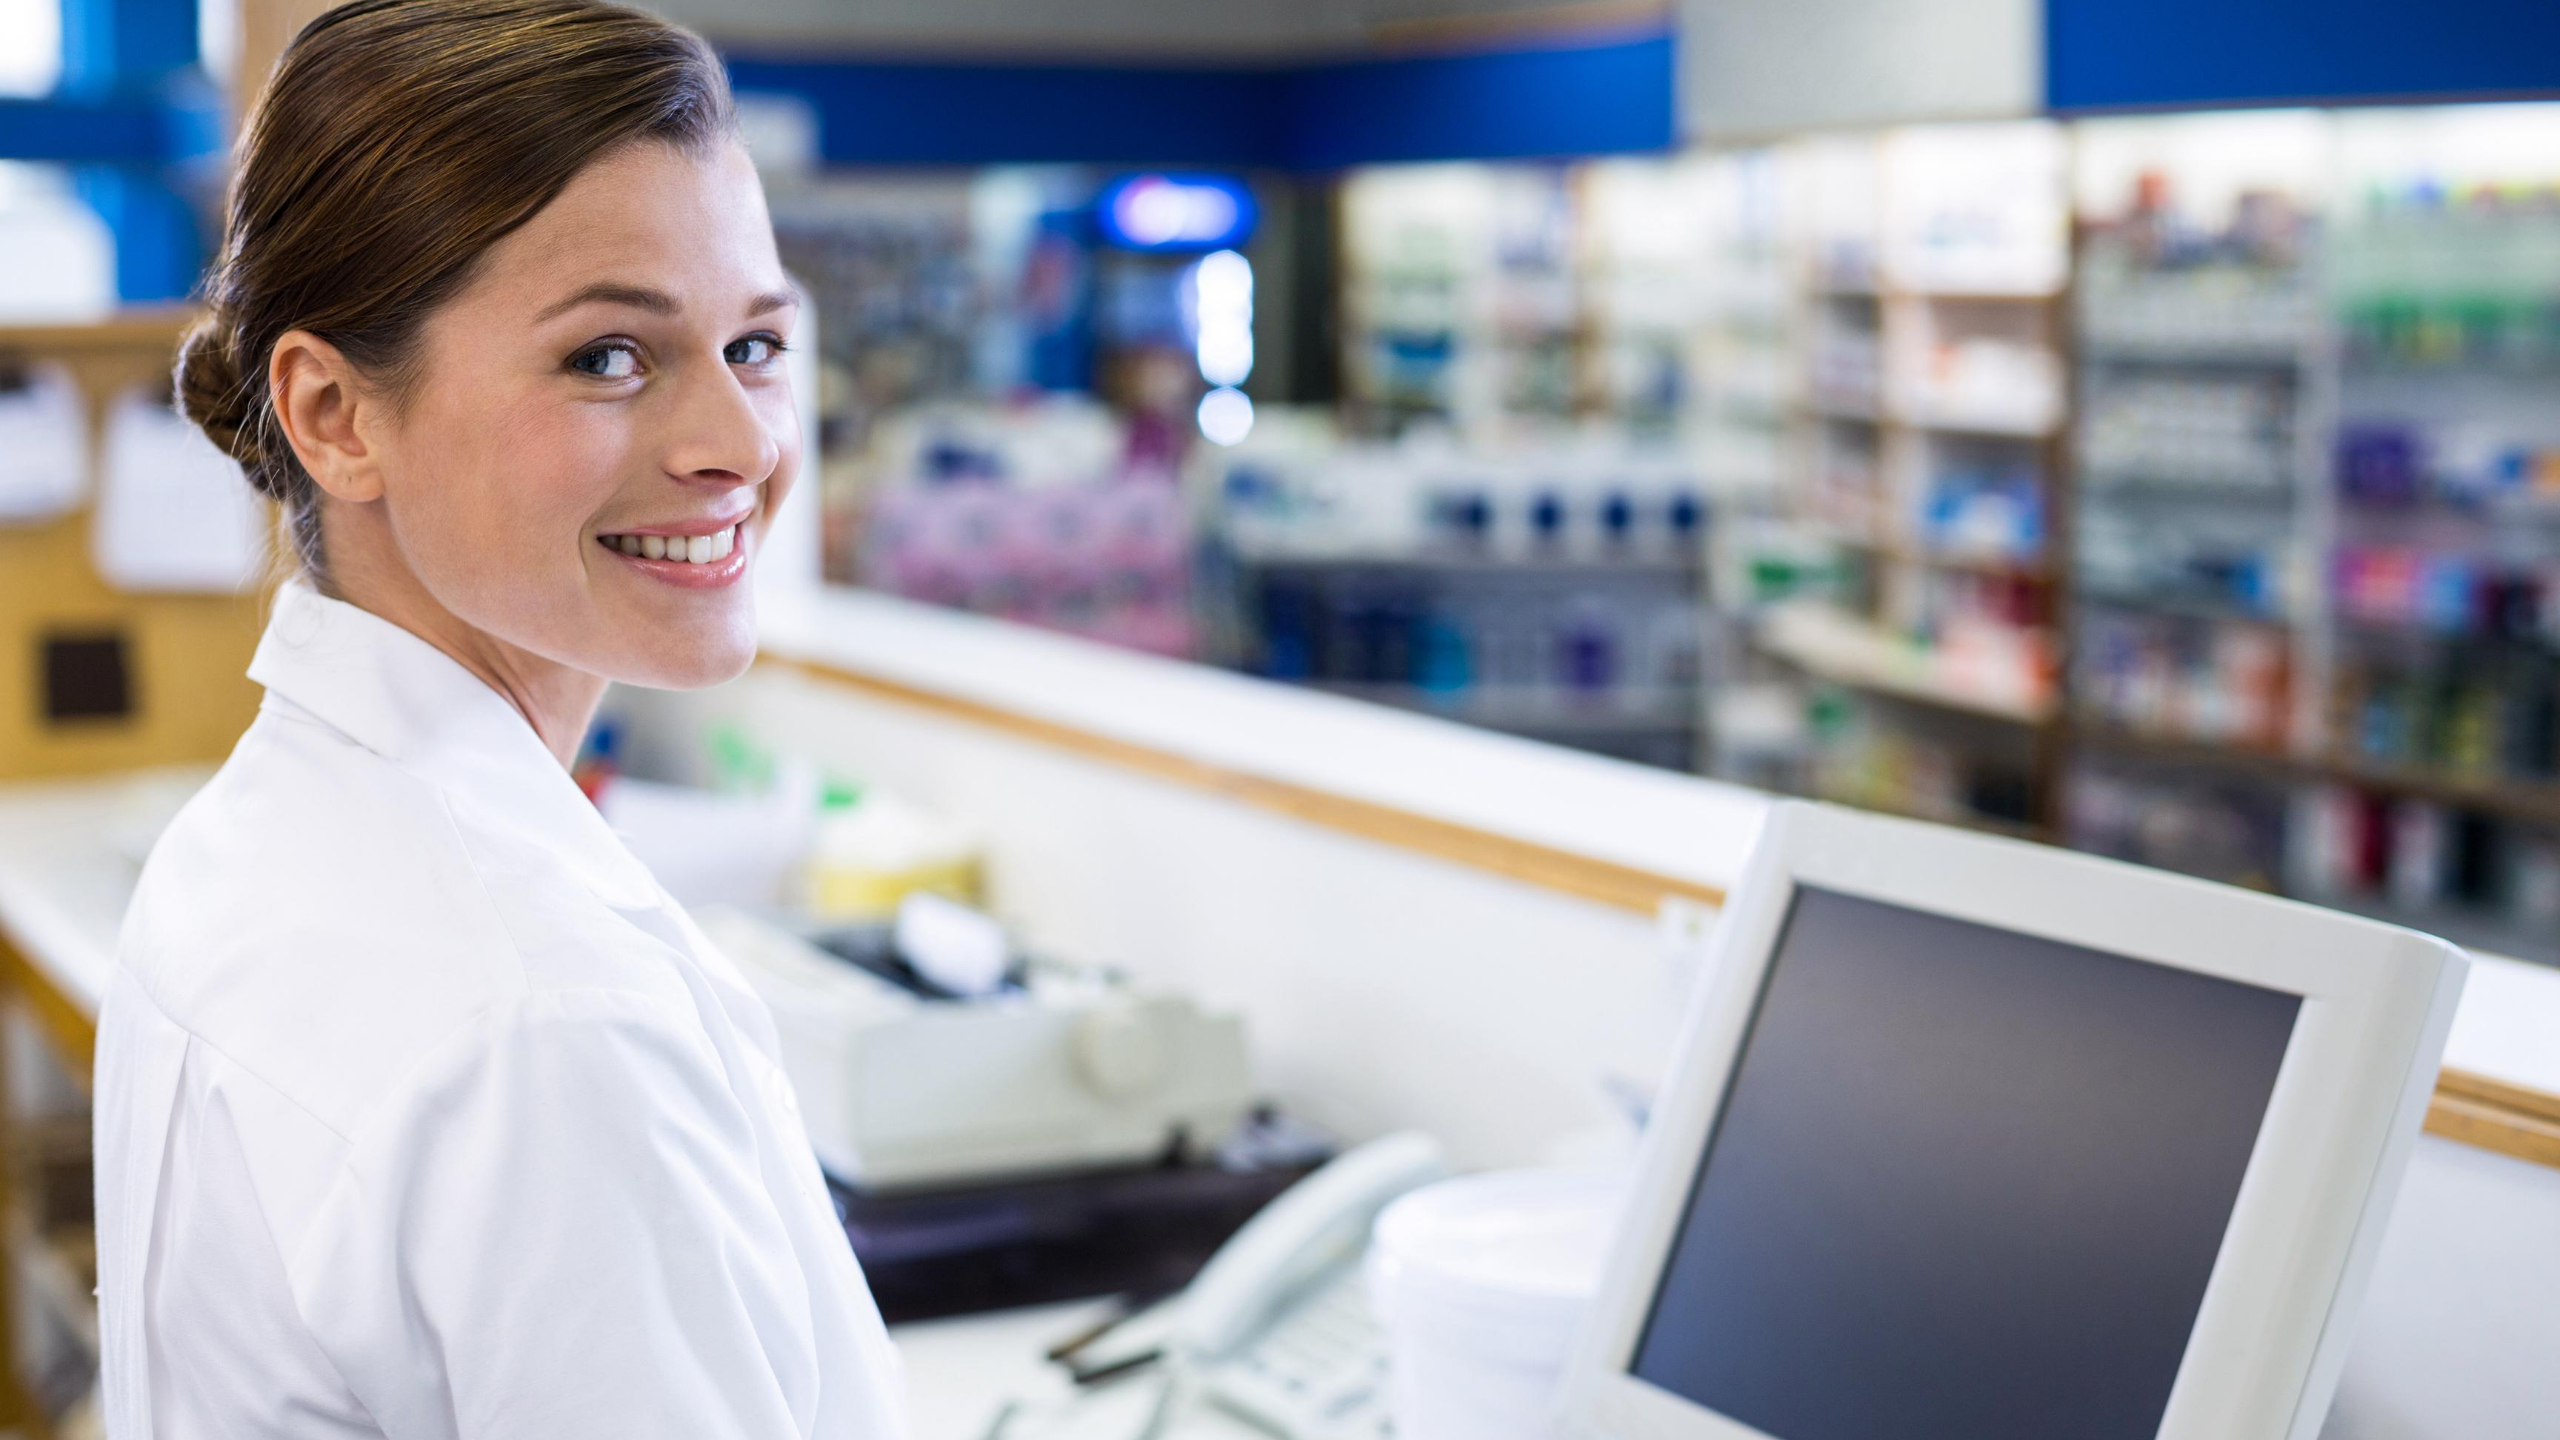 How-to-optimise-your-patient-care-and-increase-pharmacy-sales-through-effective-time-management